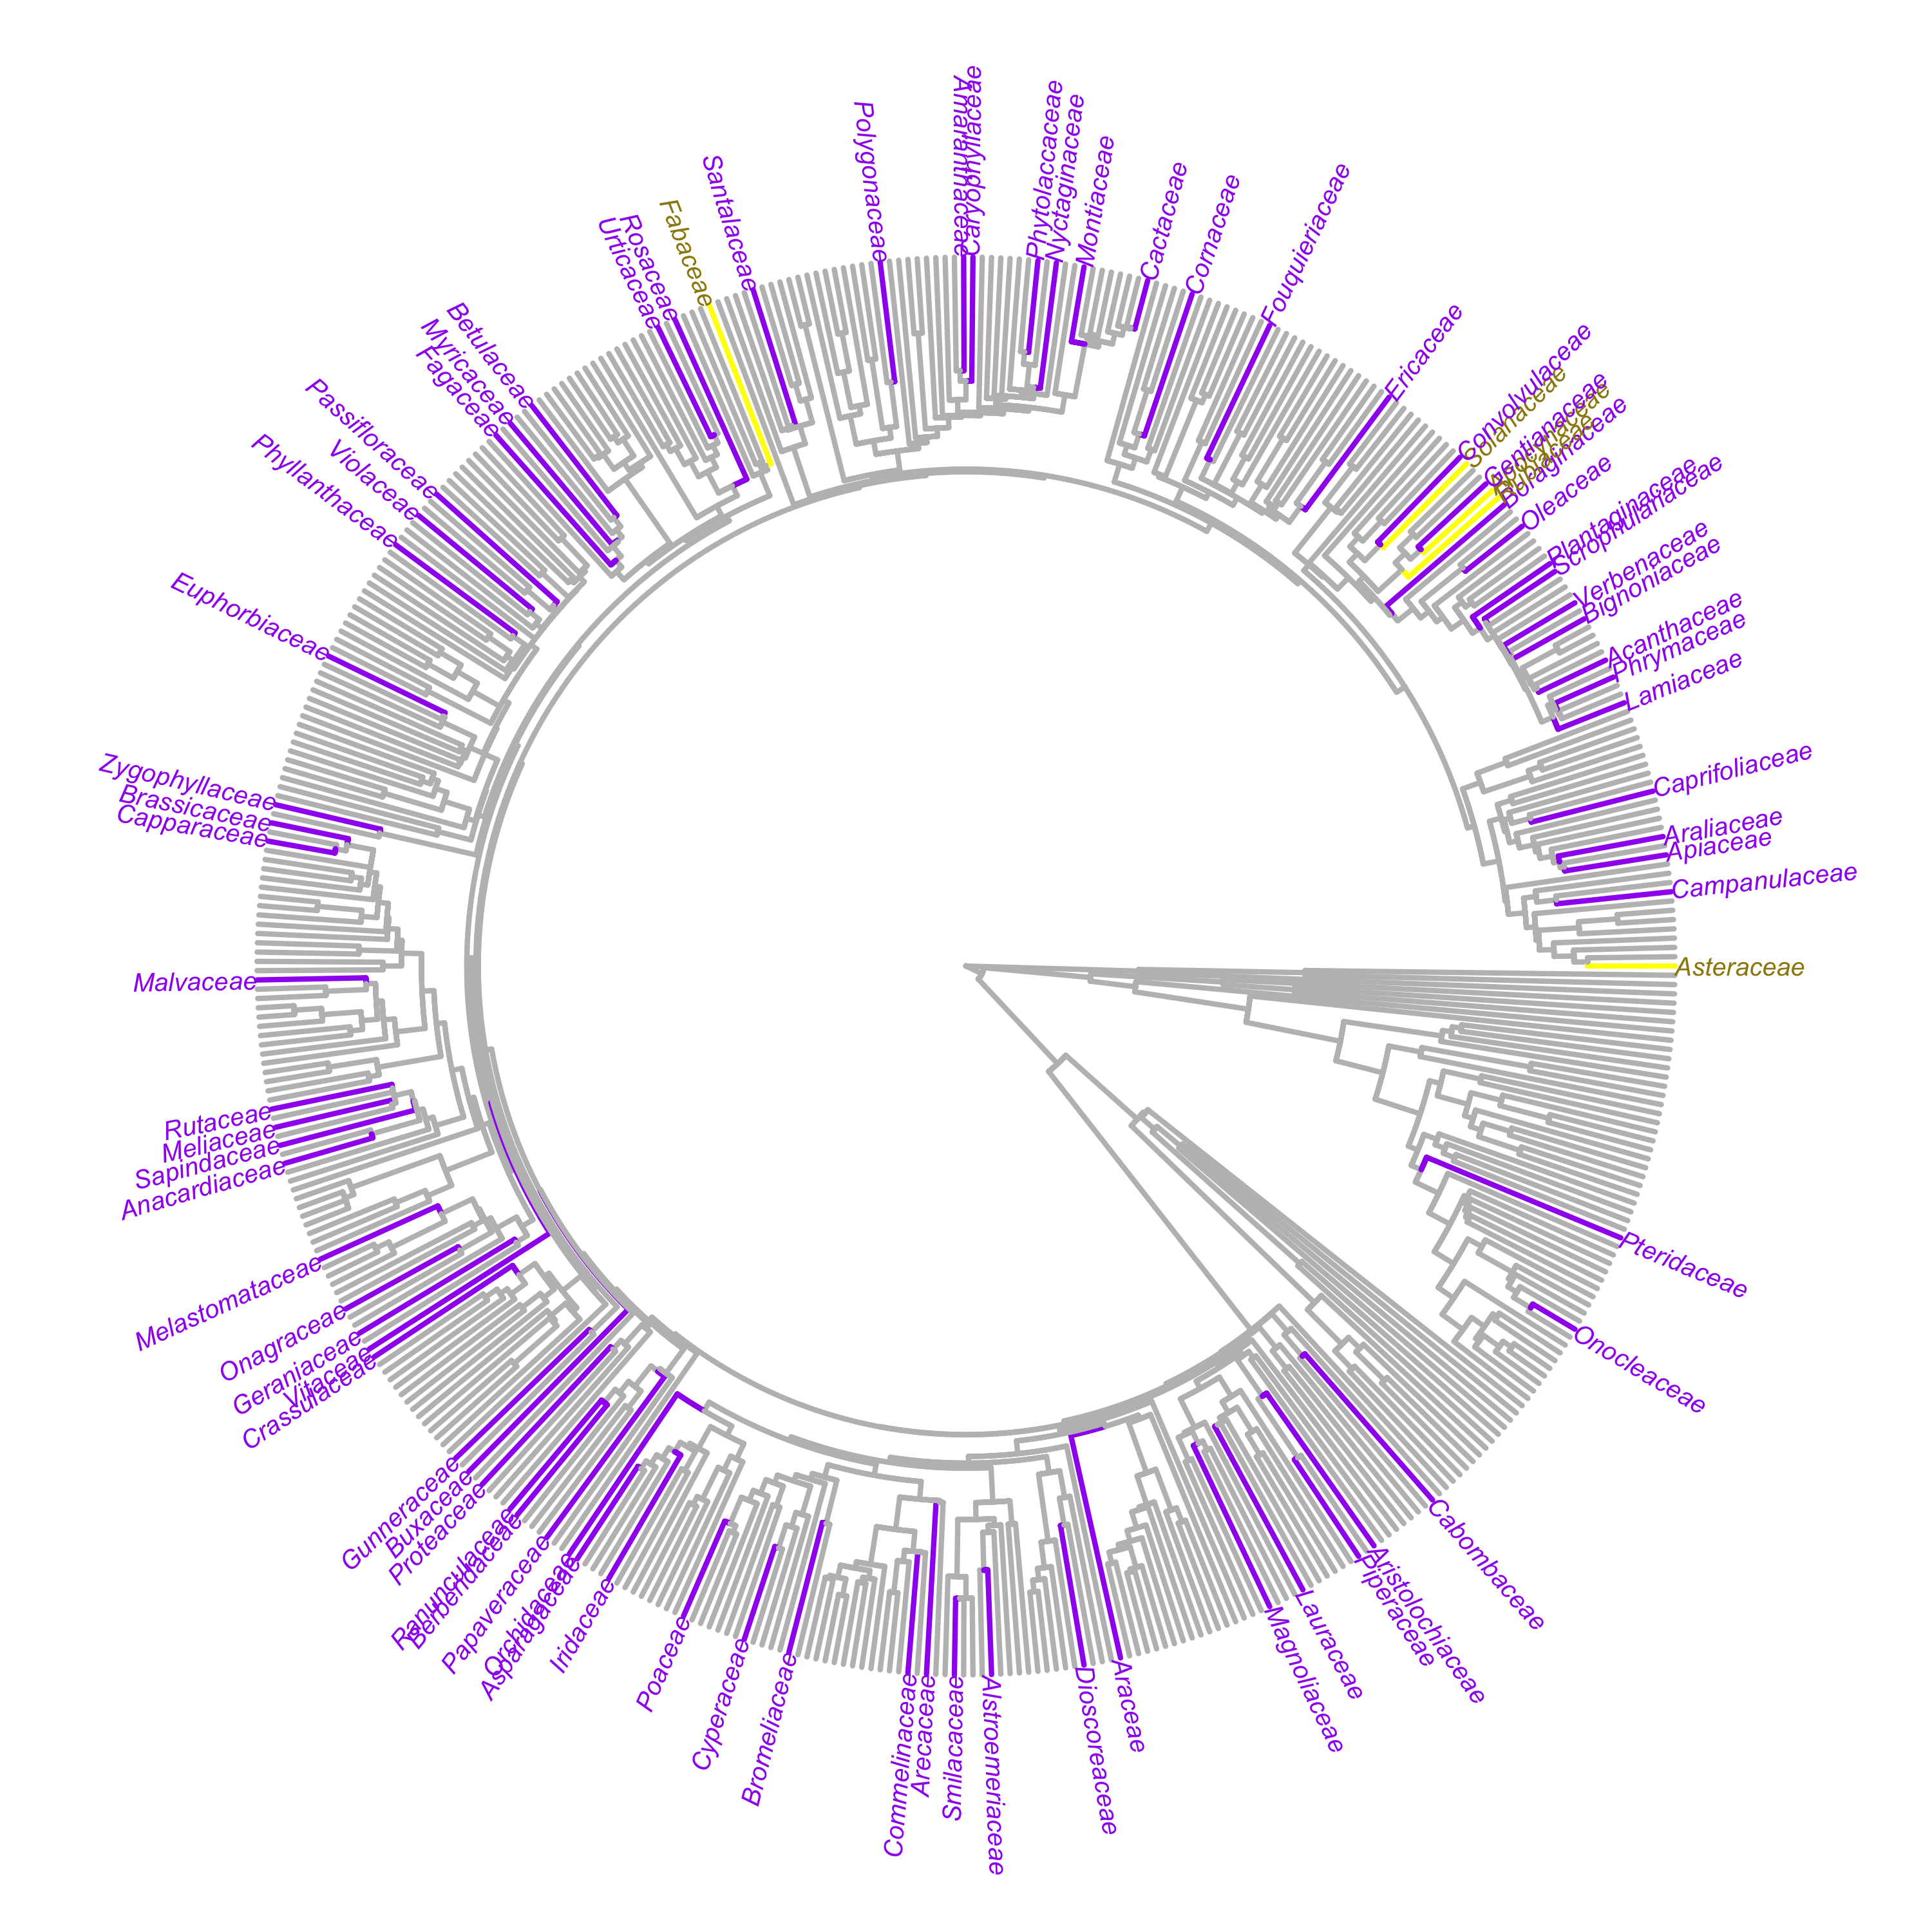 The distribution of currently sampled plant families across the phylogeny of all extant vascular plant families. Our five focal families are in yellow (Apocynaceae, Asteraceae, Fabaceae, Rubiaceae, and Solanaceae), and other sampled families are in purple. Figure made by HerbVar collaborator [Marjorie Weber](http://www.theweberlab.com) with mega-tree from Jin et al. 2019.